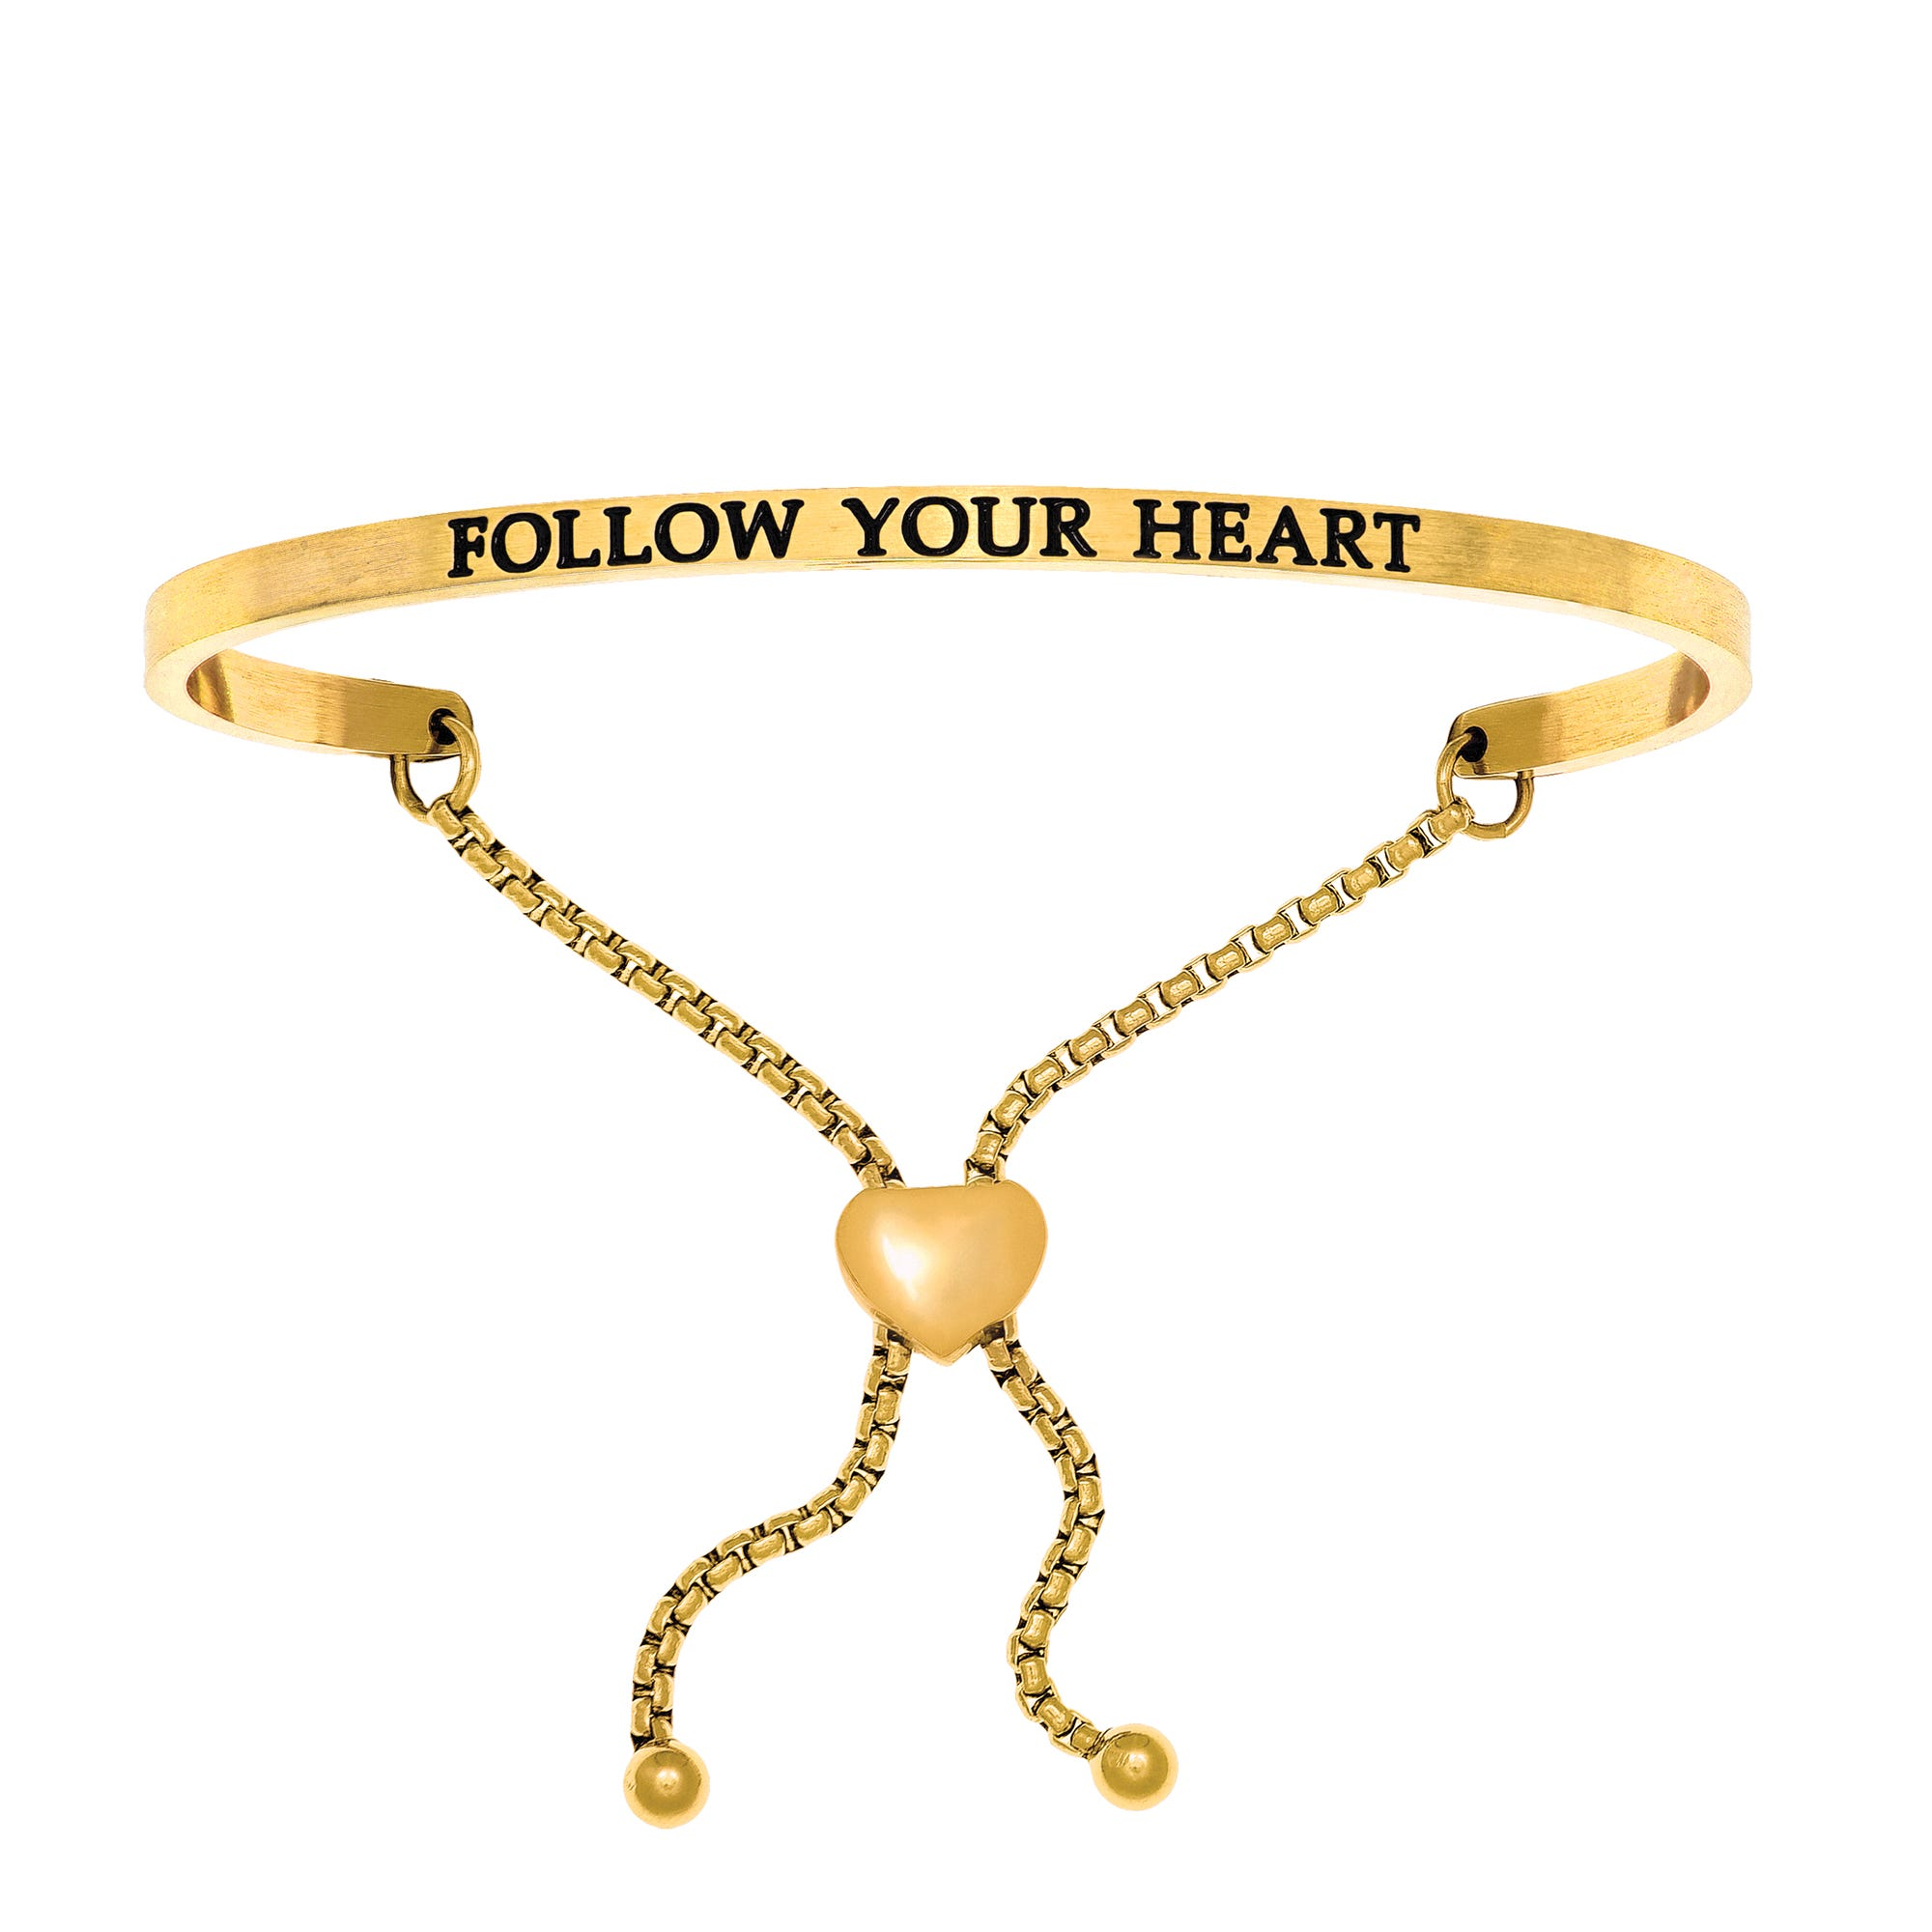 Follow Your Heart. Intuitions Bolo Bracelet in Yellow Stainless Steel